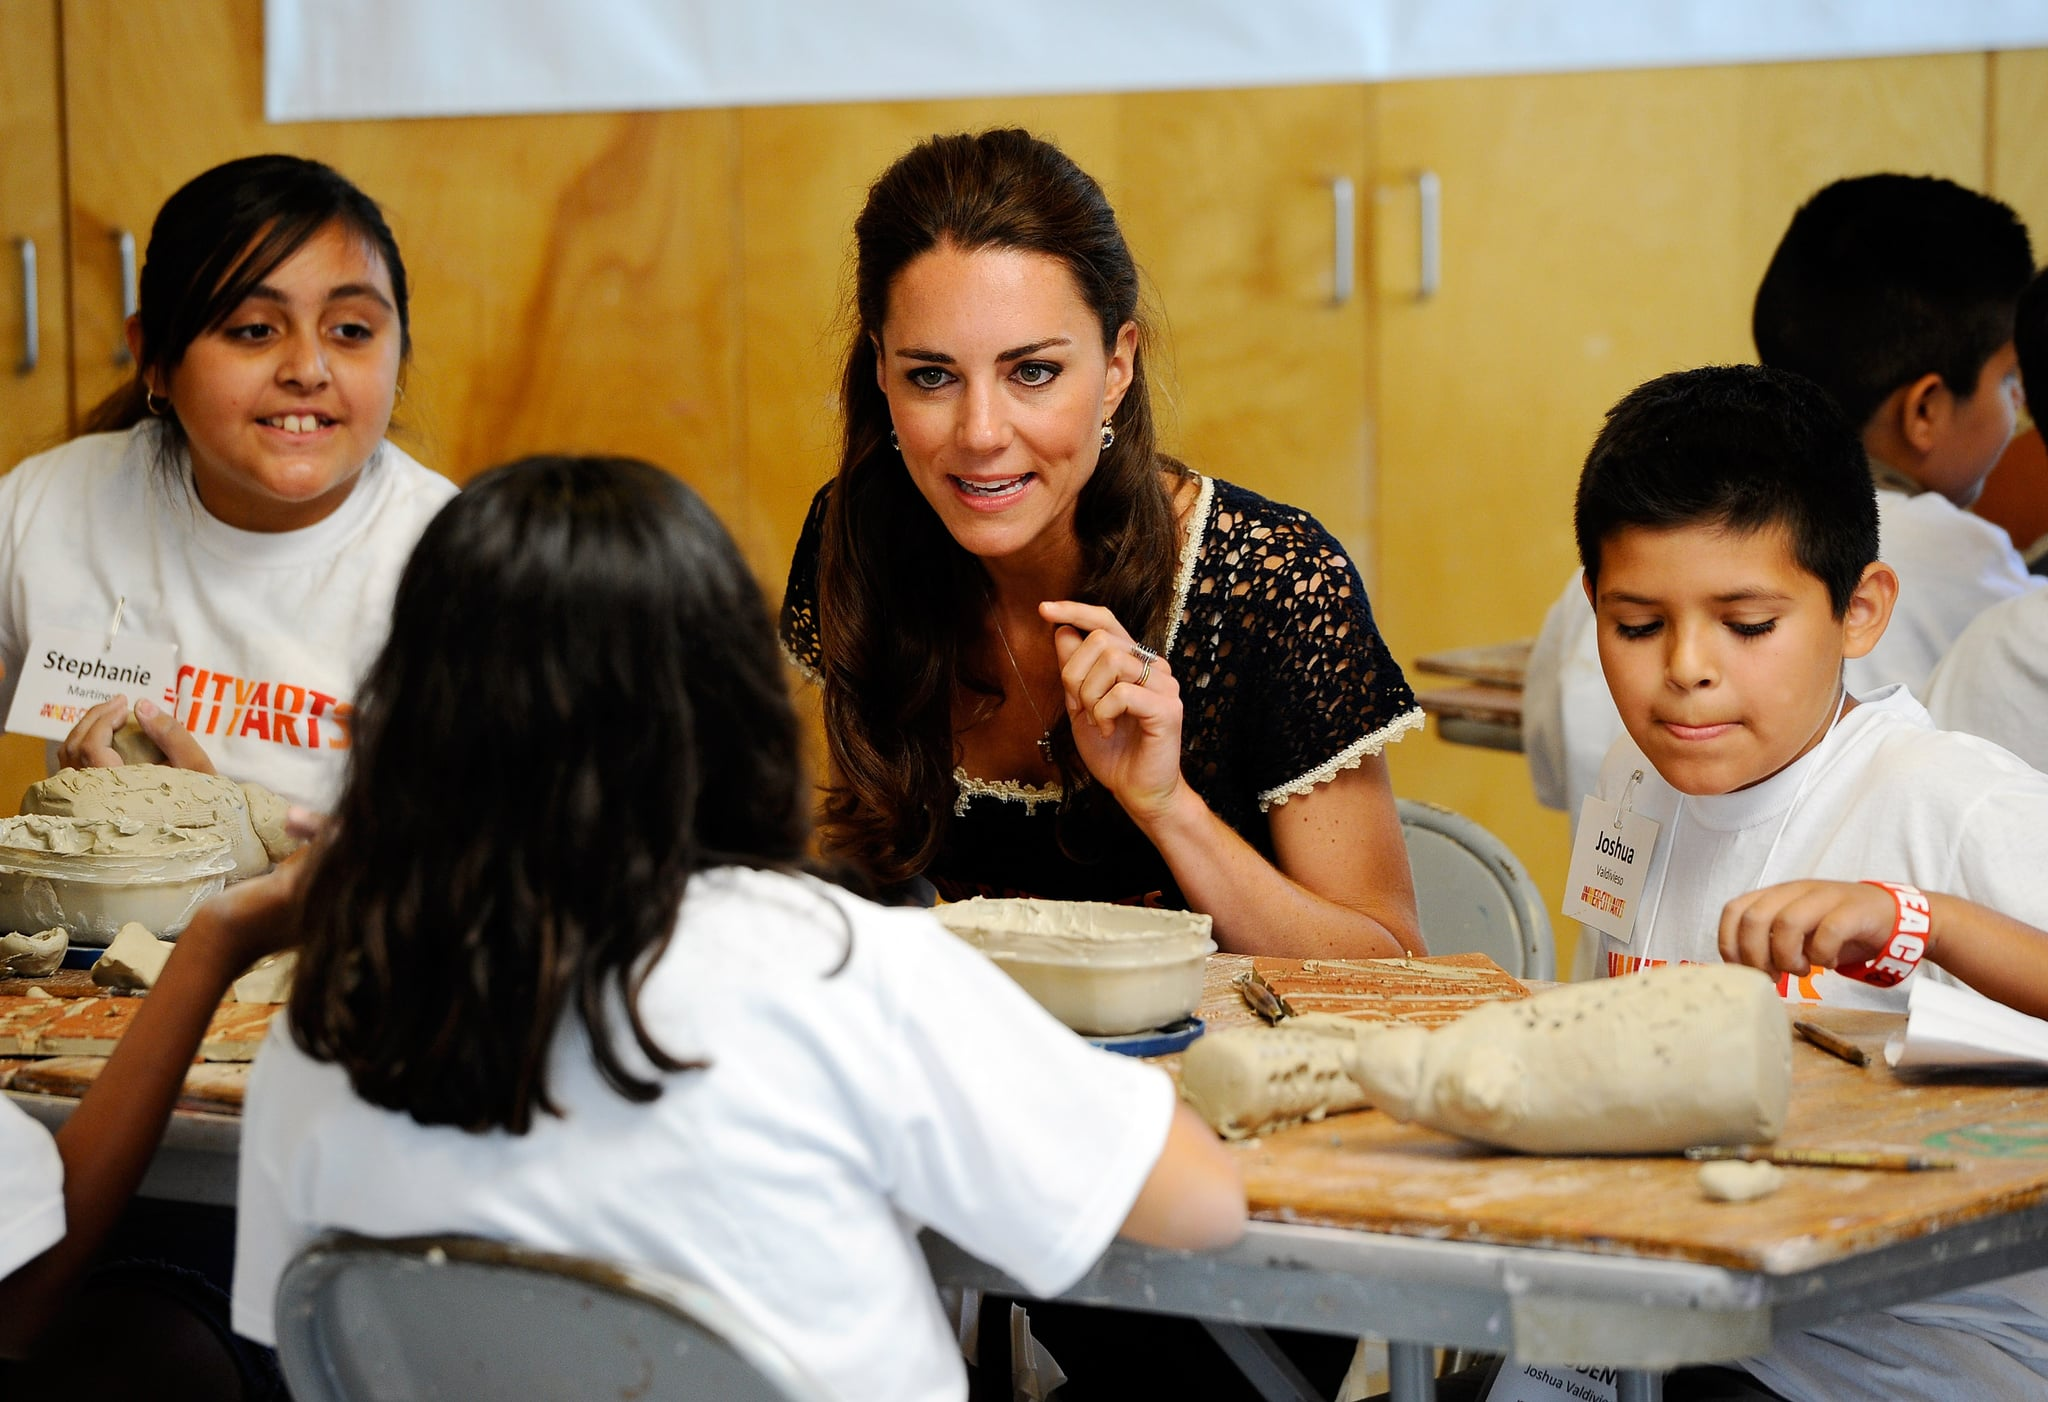 Kate Middleton doing crafts at Inner City Arts in LA.